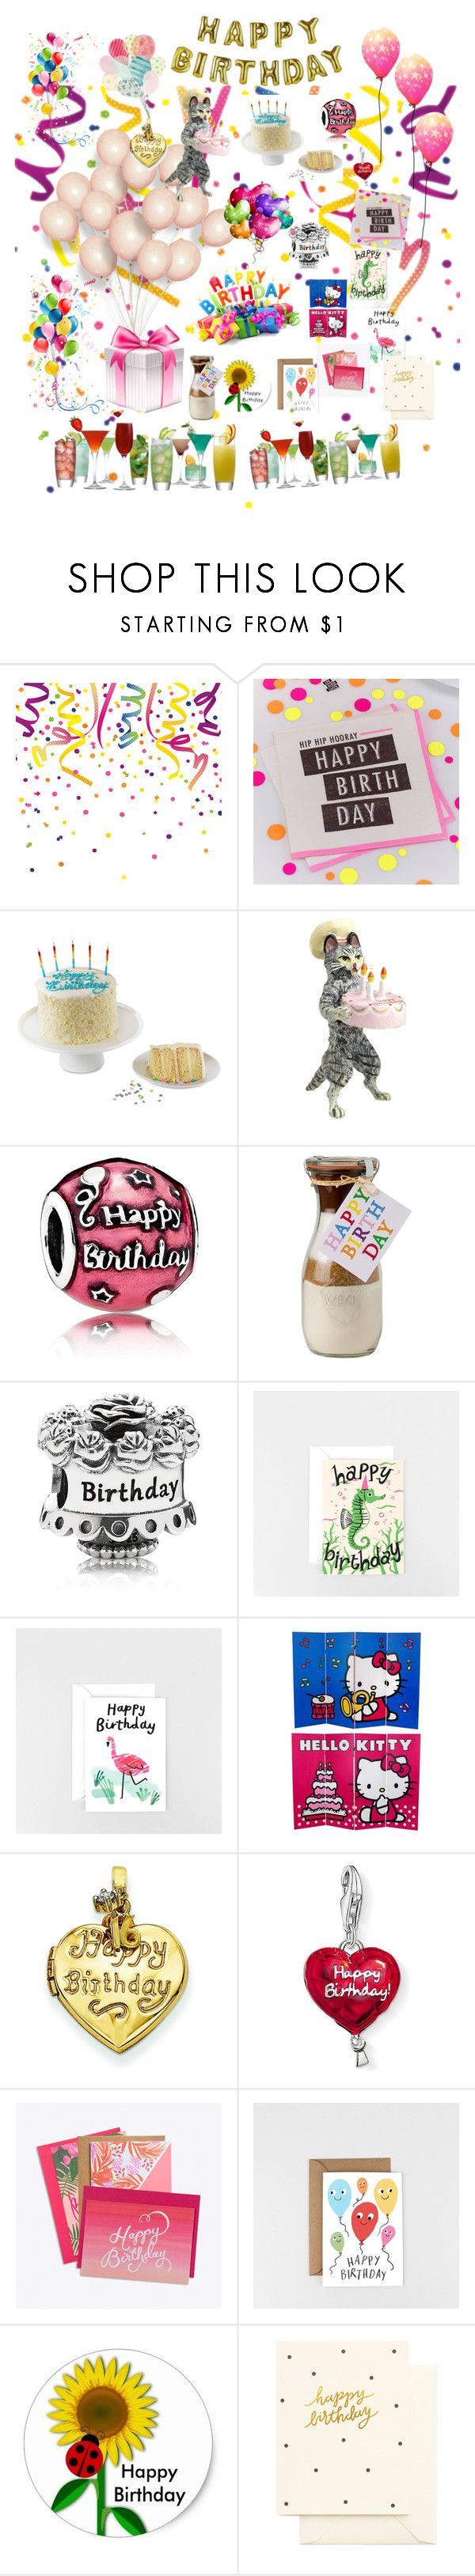 """""""It's my birthday today 🎂🍾🍷"""" by soniauk ❤ liked on Polyvore featuring Ginger Ray, We Take the Cake, Pandora, Talking Tables, Snowden Flood, Kevin Jewelers and Thomas Sabo"""